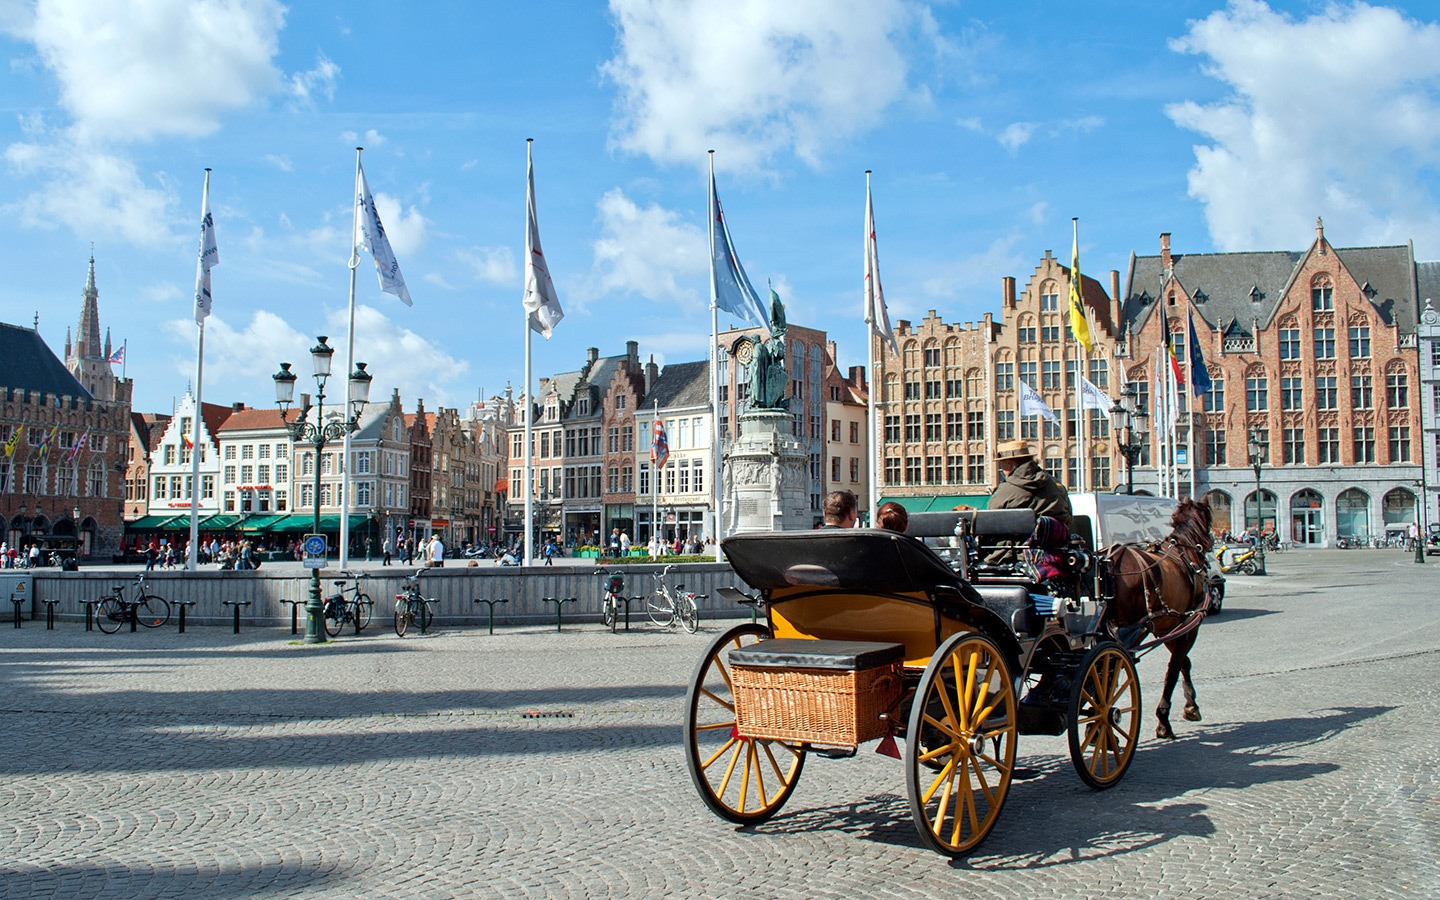 Horse and carriage in the Grote-Markt in Bruges, Belgium